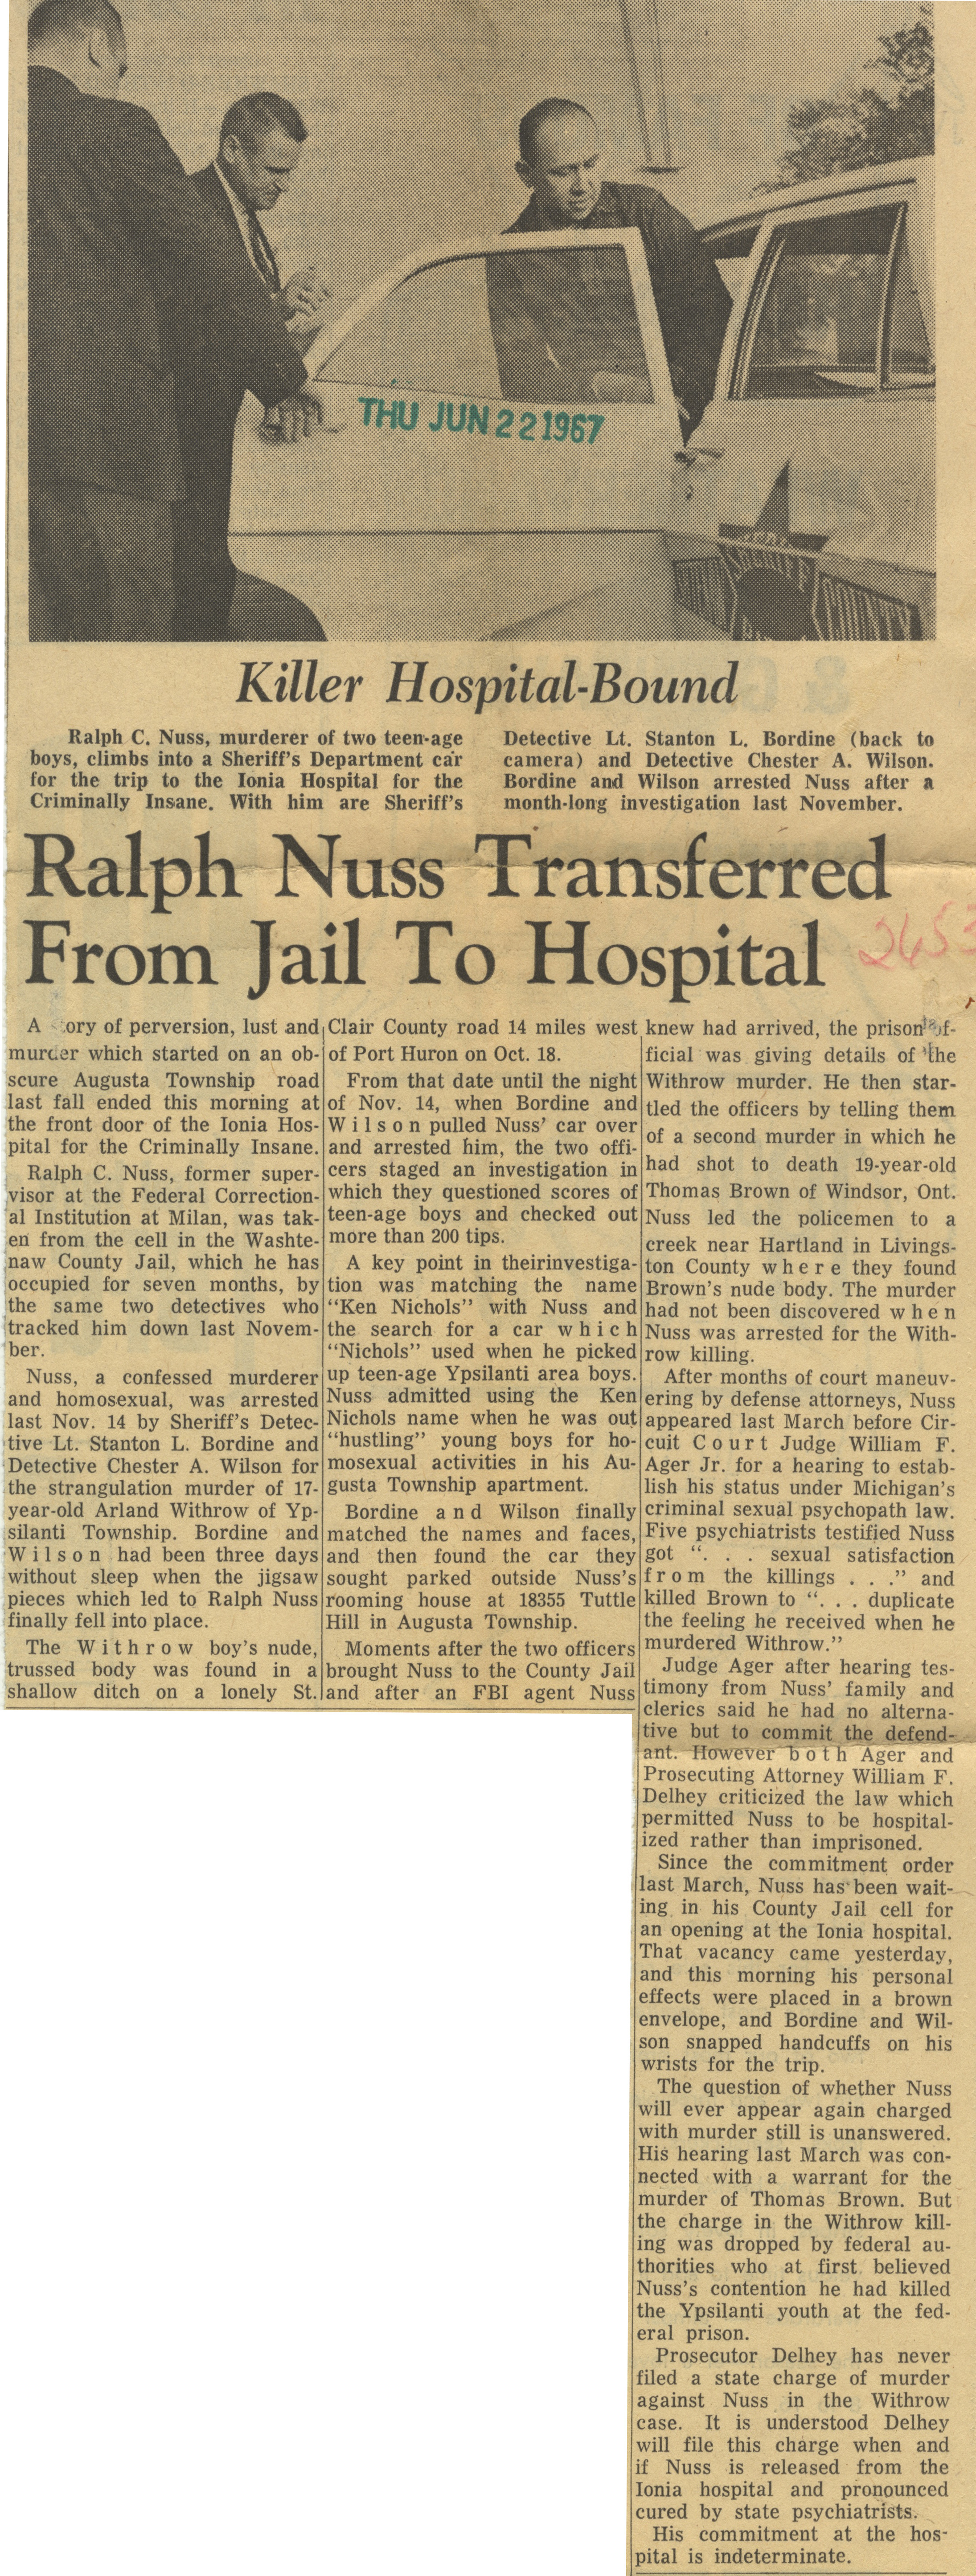 Ralph Nuss Transferred From Jail To Hospital image